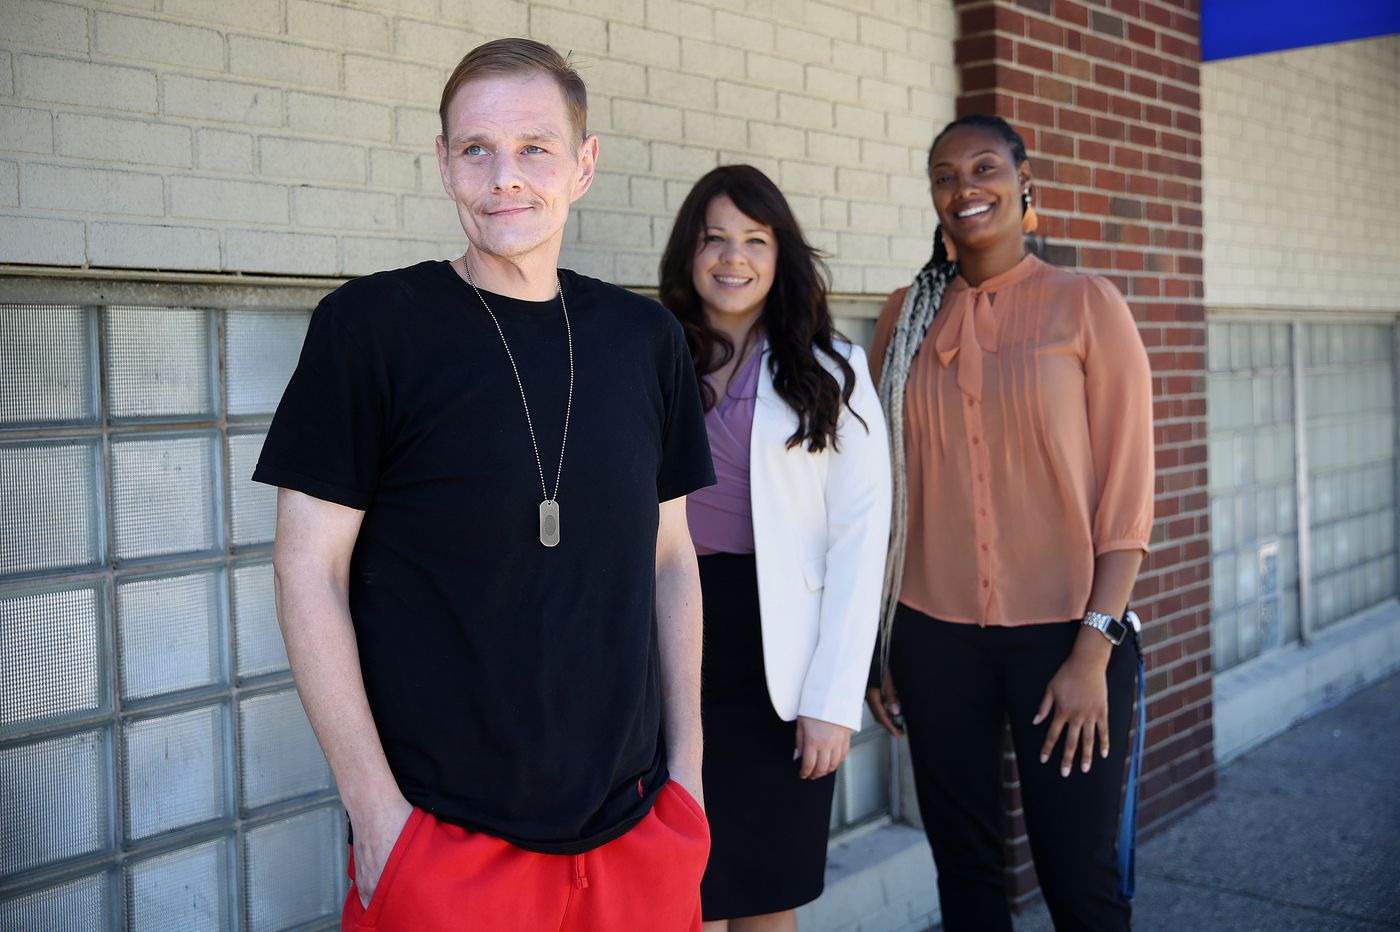 For people in recovery, it's tough to find work. New programs are helping.